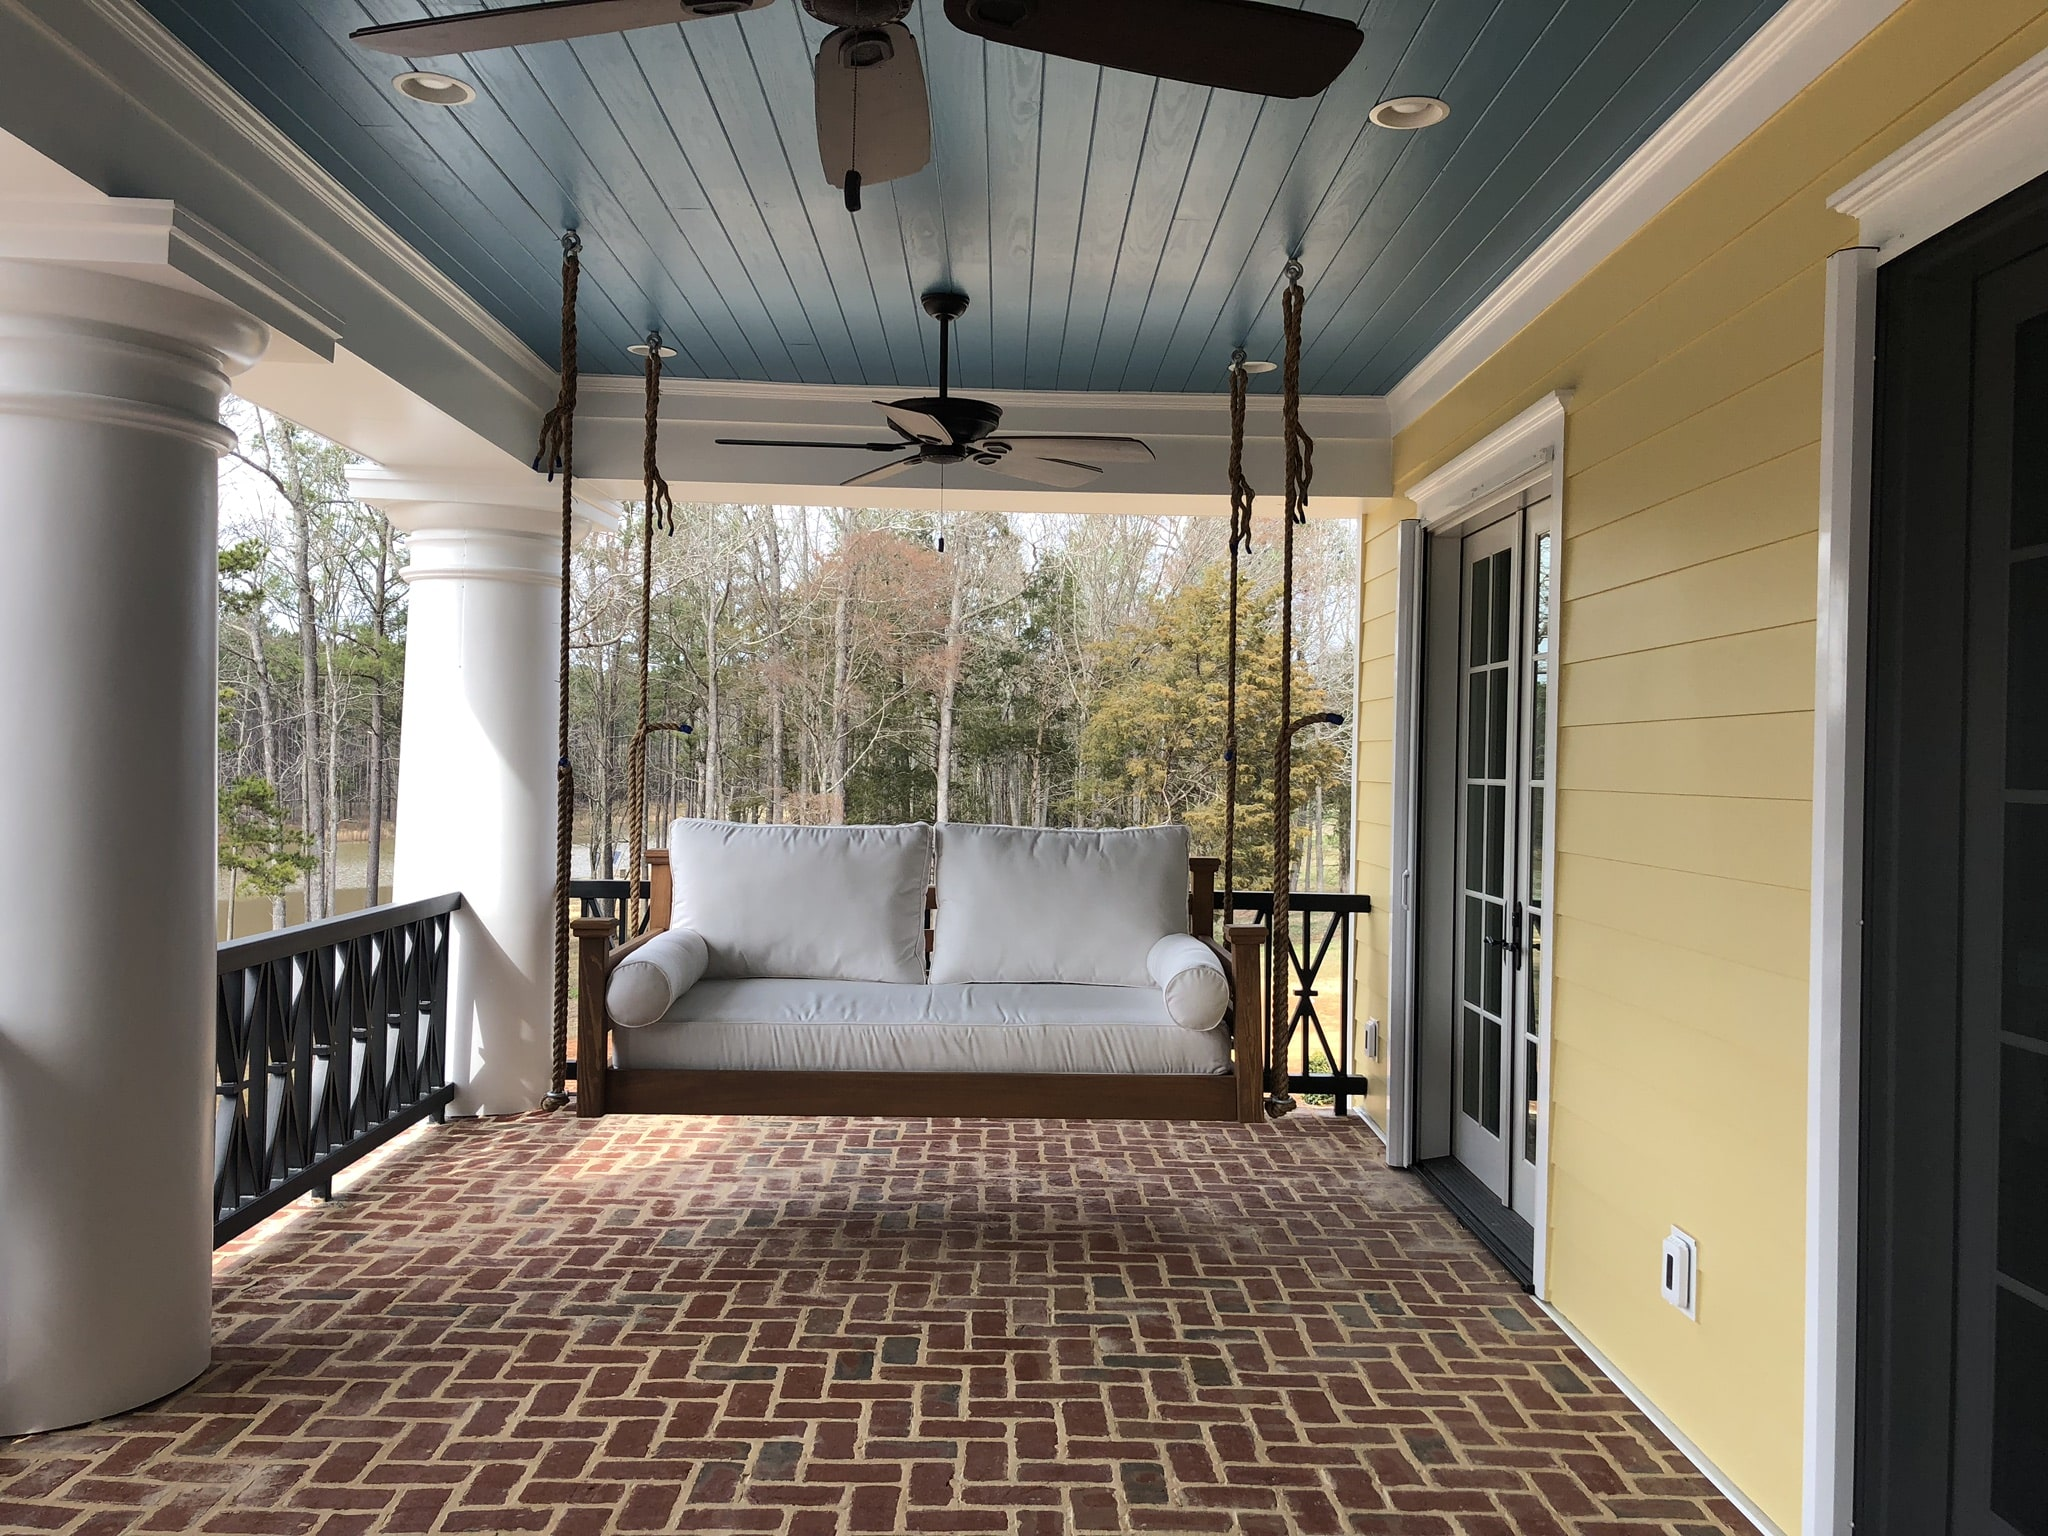 Swinging bed on second level front porch.